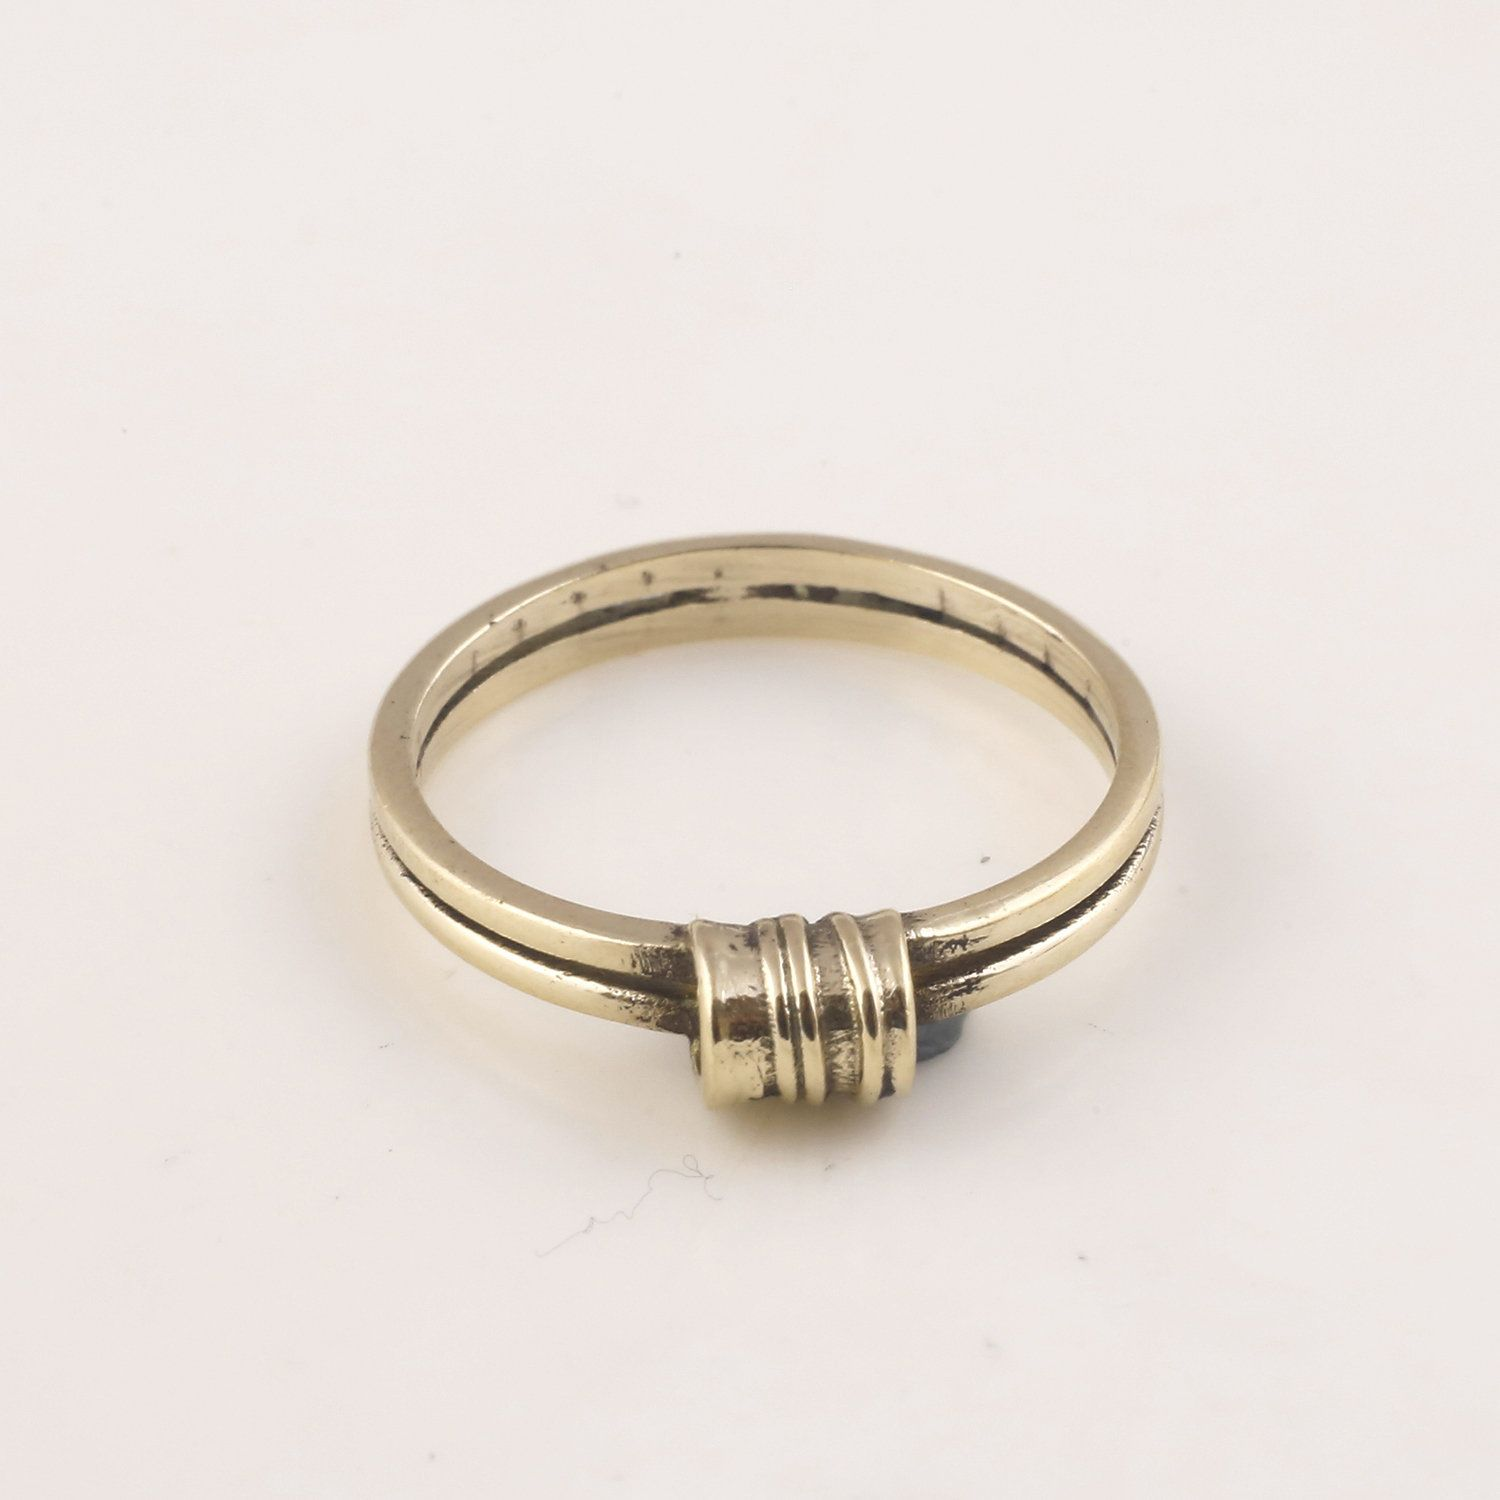 engraved silver ring,sterling silver ring,couple ring,mens ring,rings for women,dainty ring,knuckle ring,promise ring,boho ring,rings